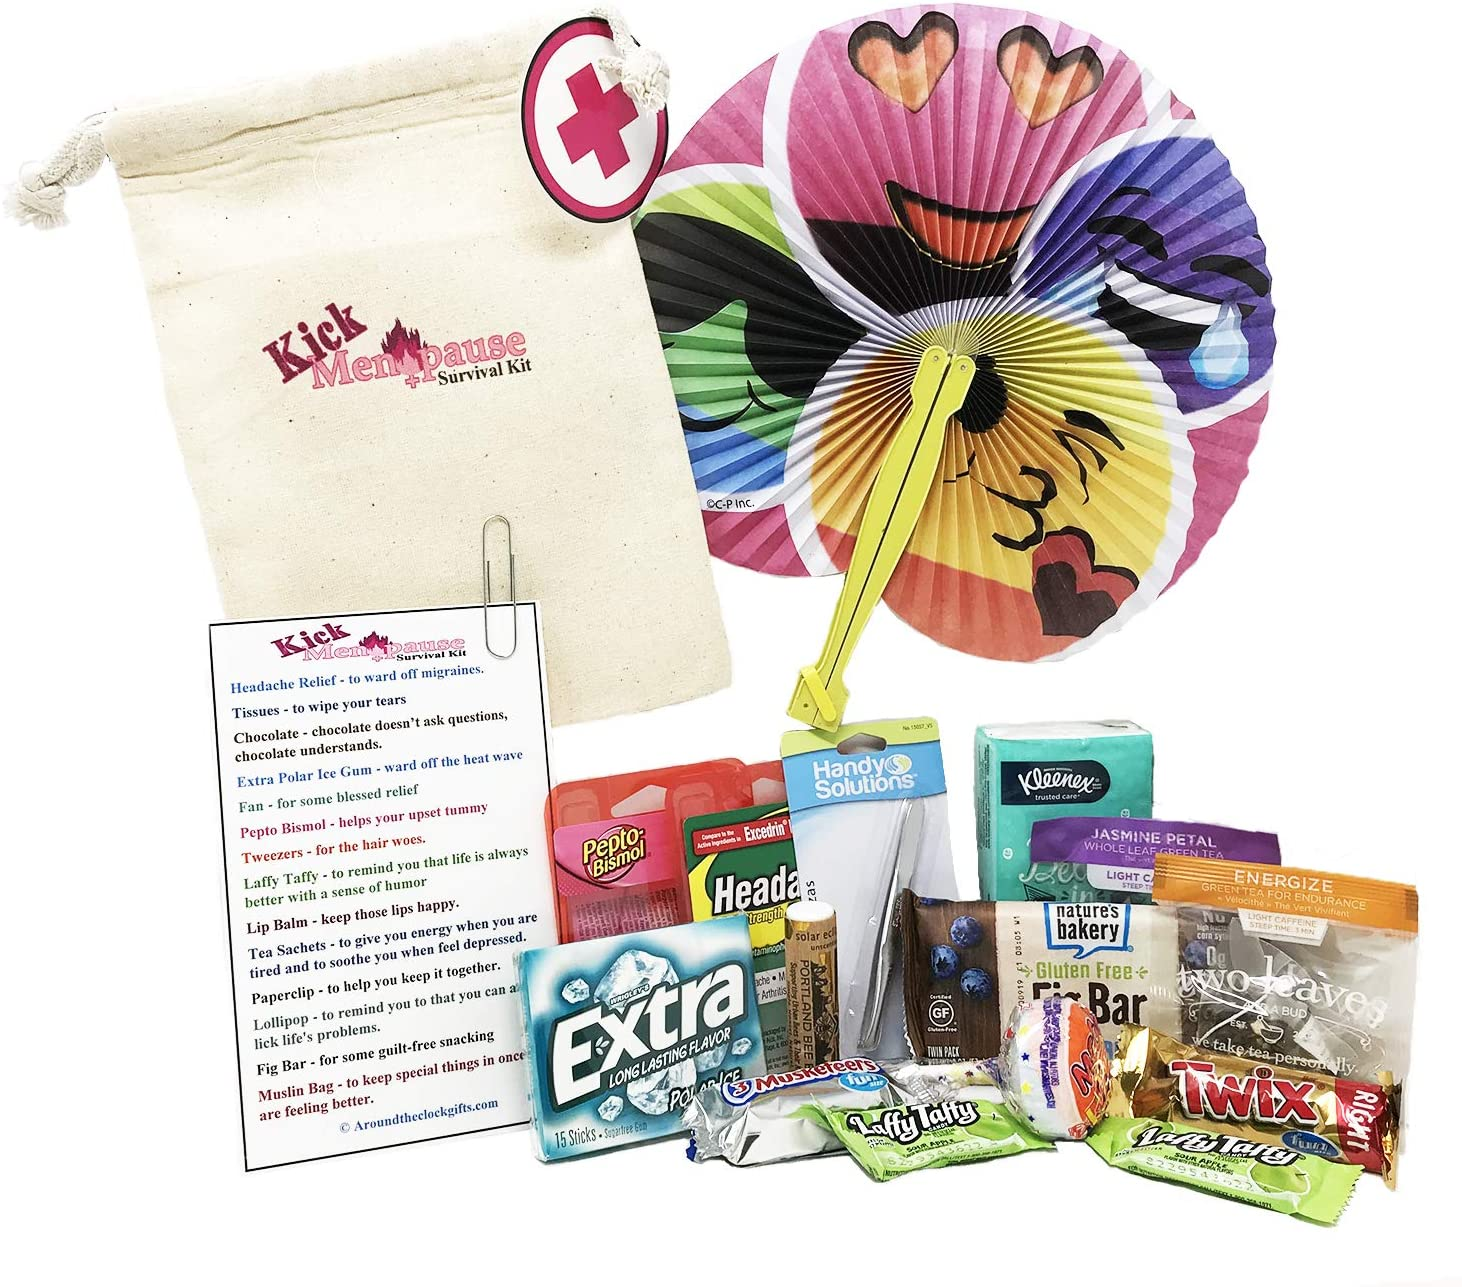 Menopause survival Kit gift idea